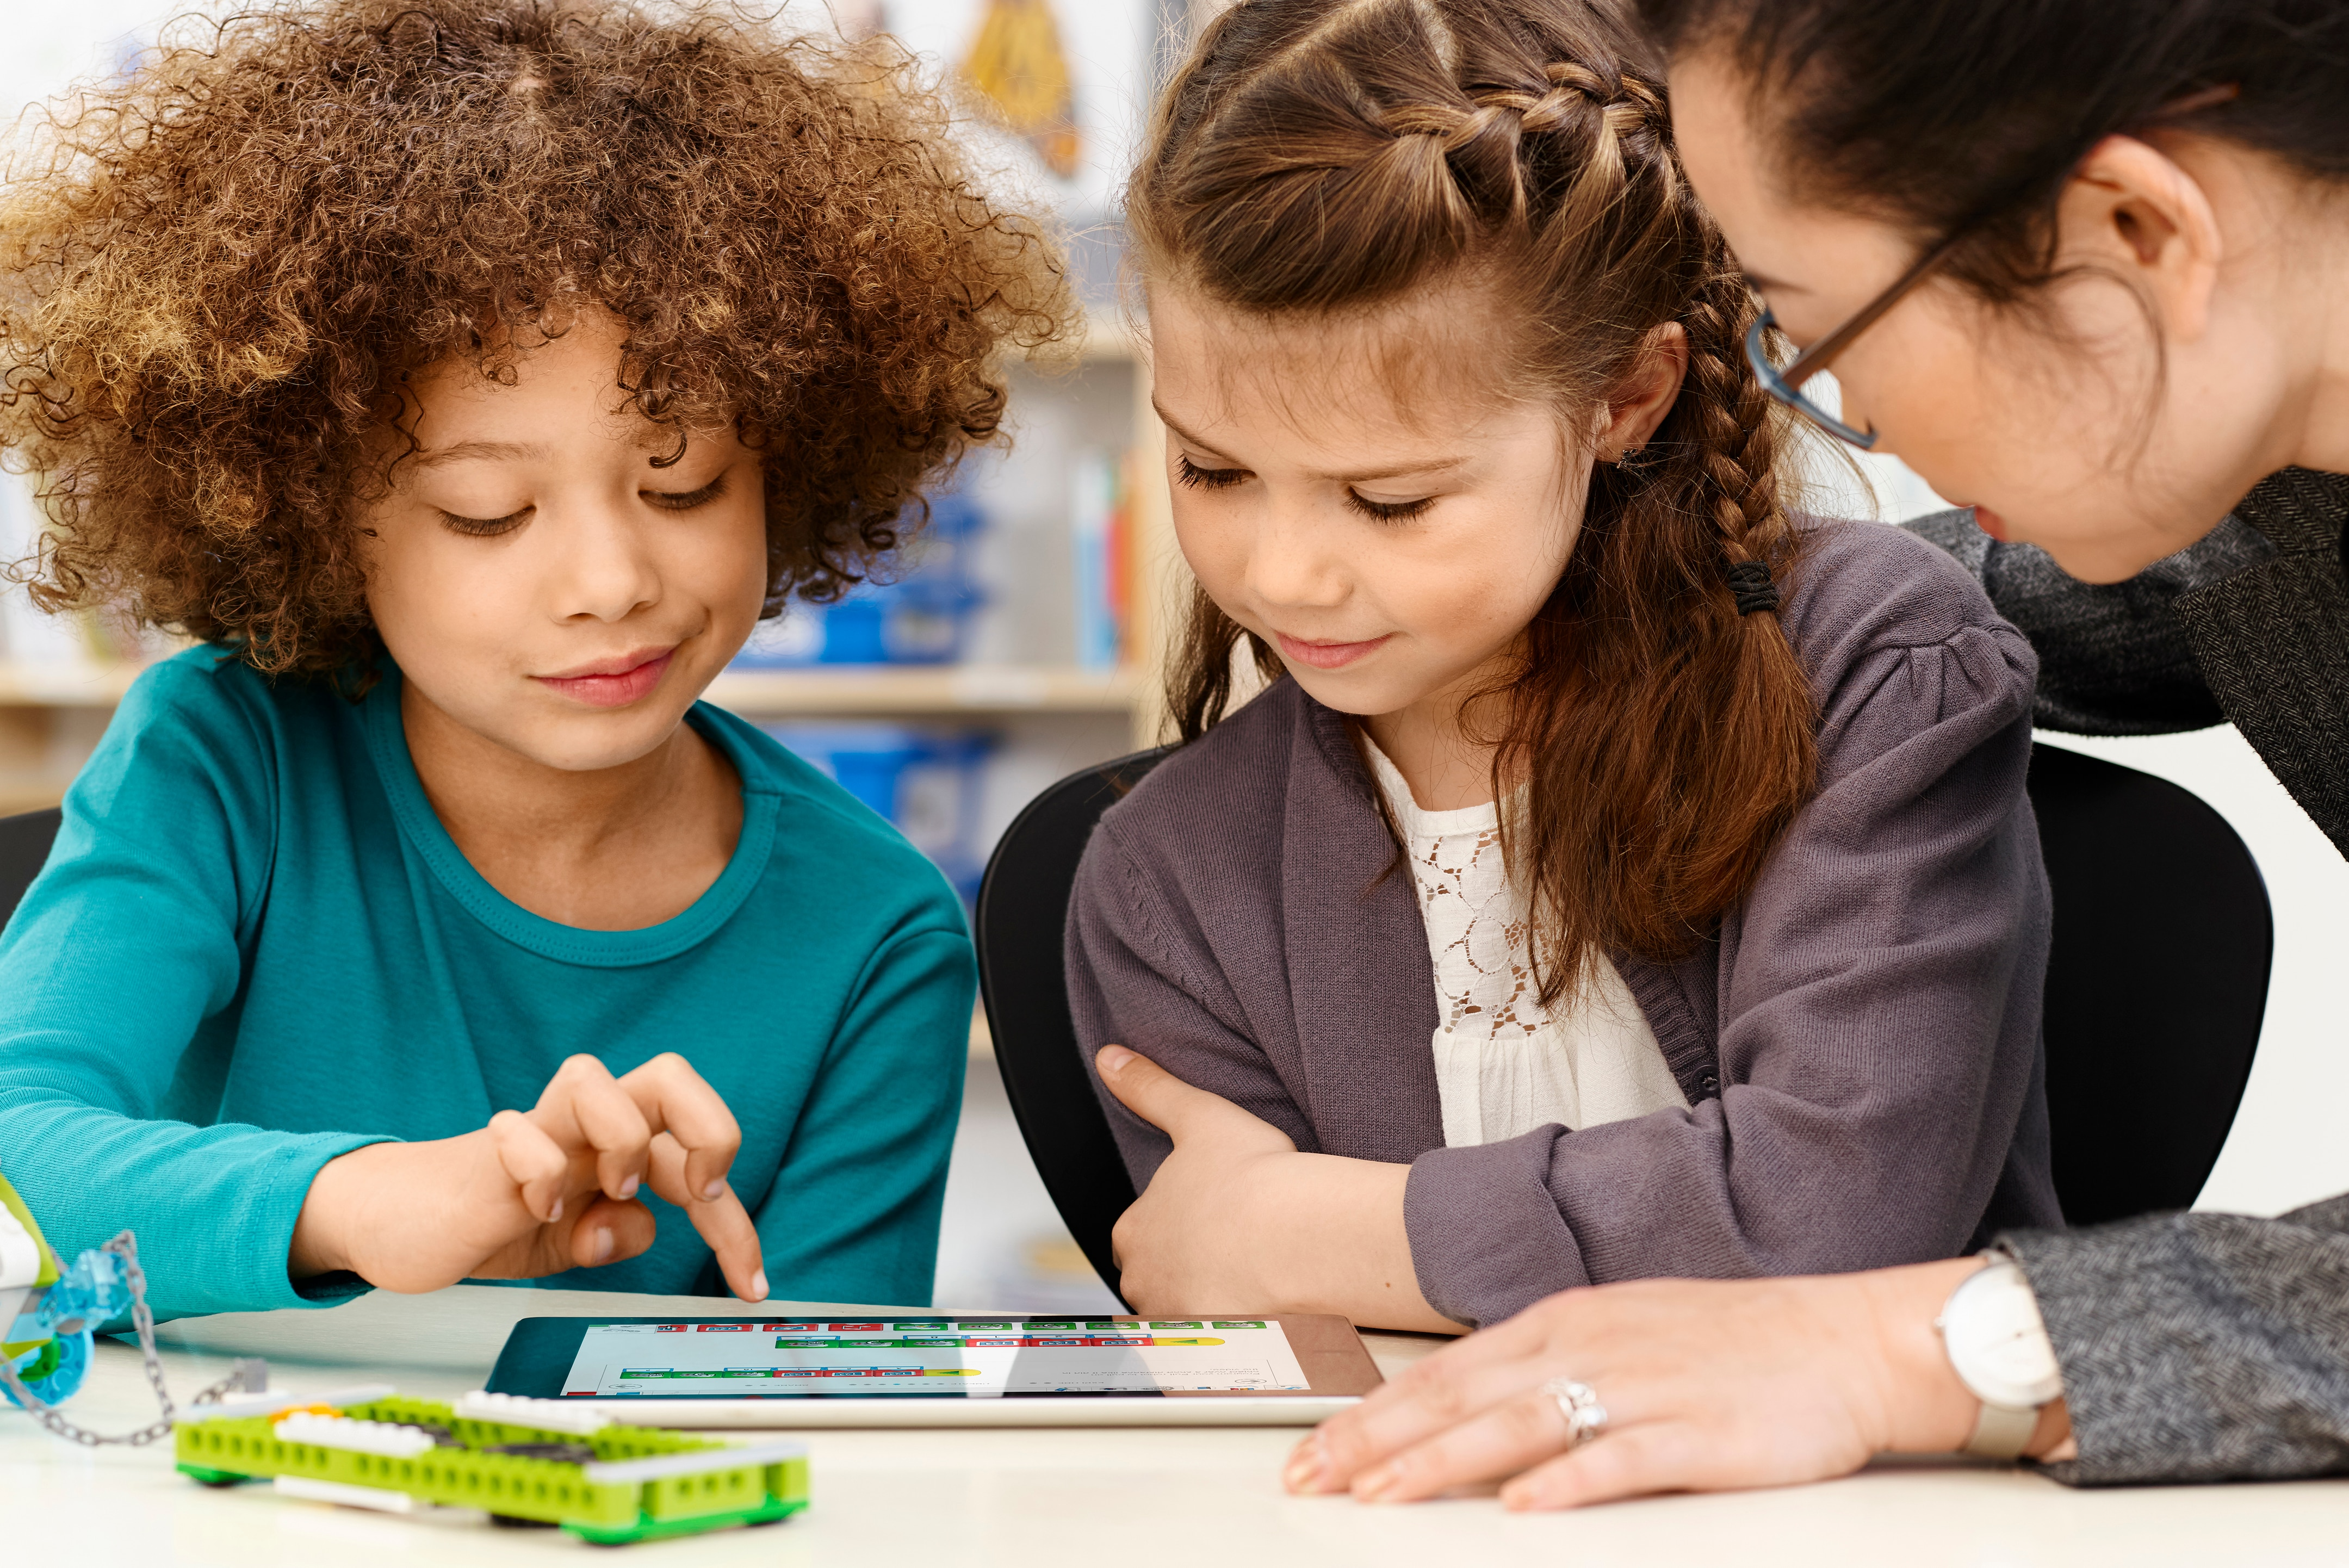 WeDo 2.0 in the classroom